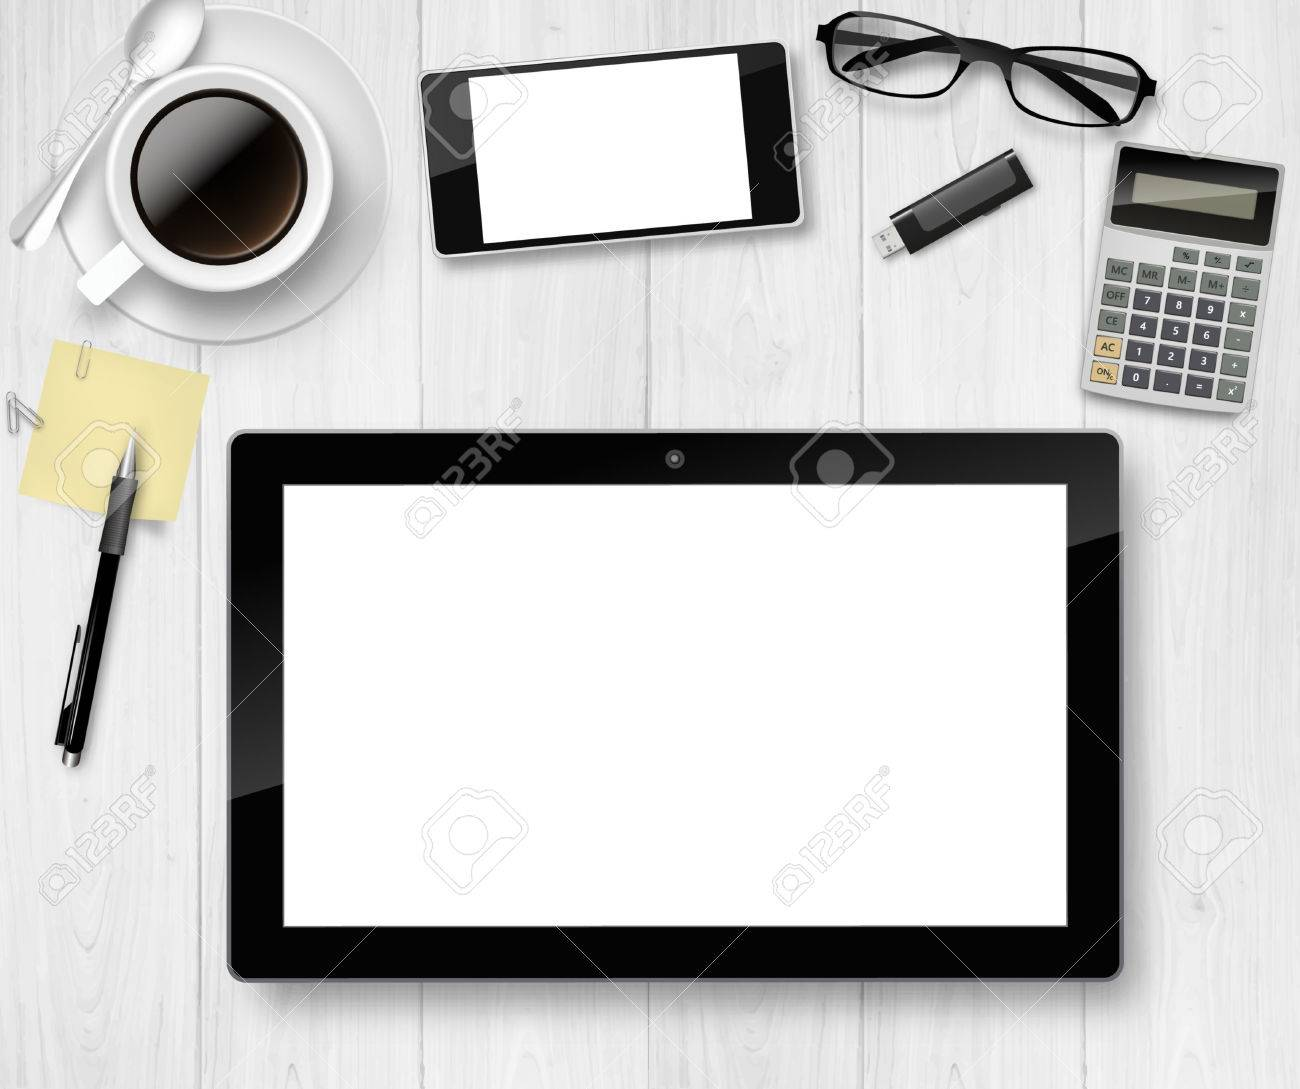 top office table cup. Top Vector Office Table With Cup Of Coffee, Pencil, Tablet, And Phone. K